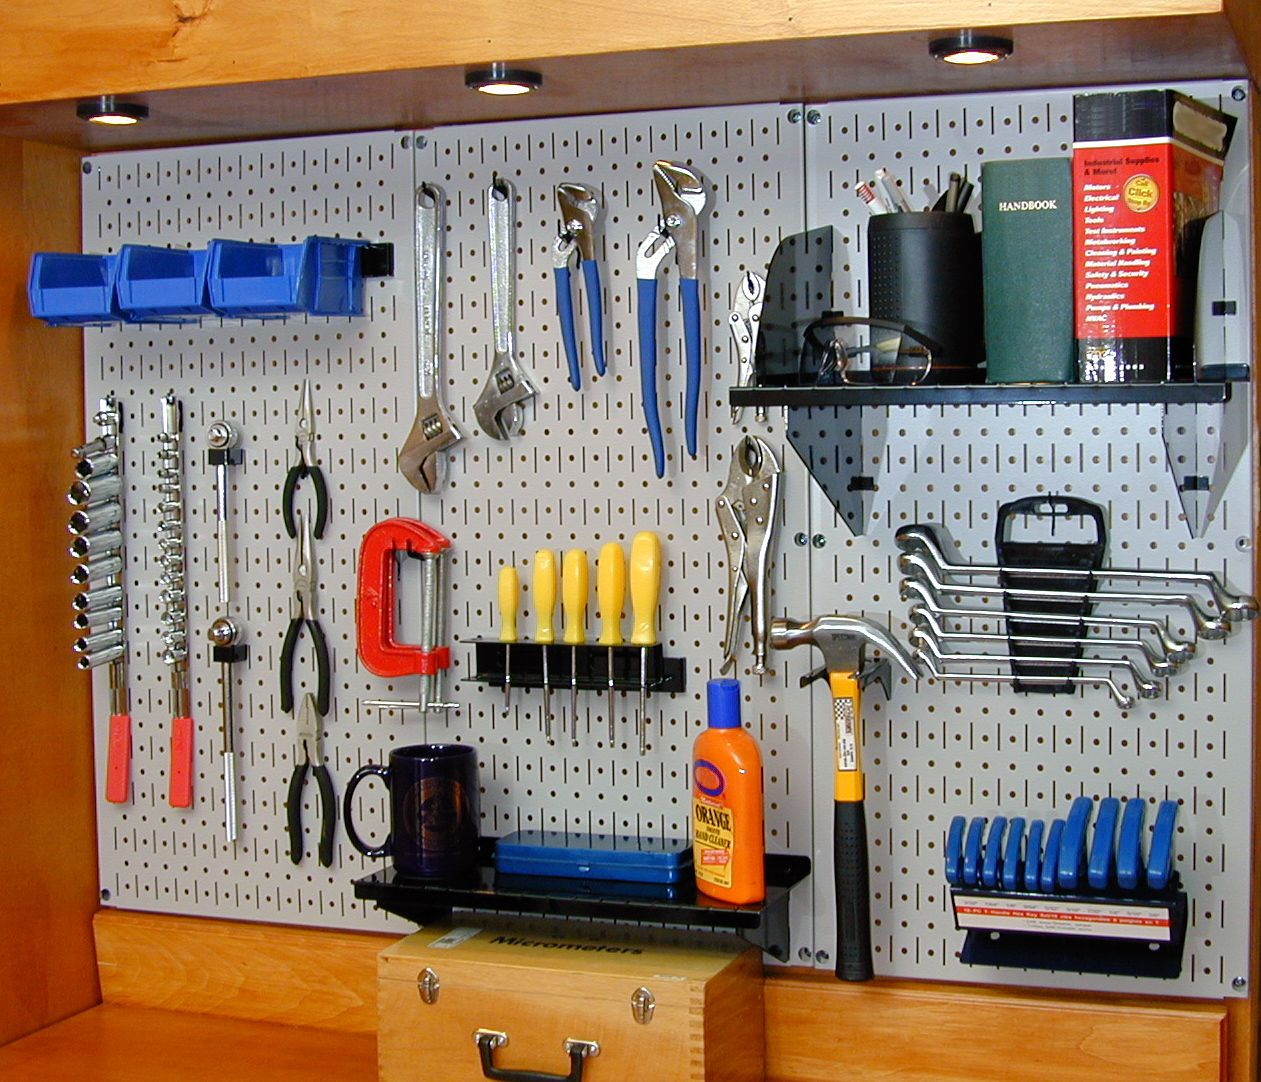 Beau Pegboard Tool Storage U0026 Garage Organization Blog: The Most Innovative Wall  Mounted Organization System Available Today (PR)